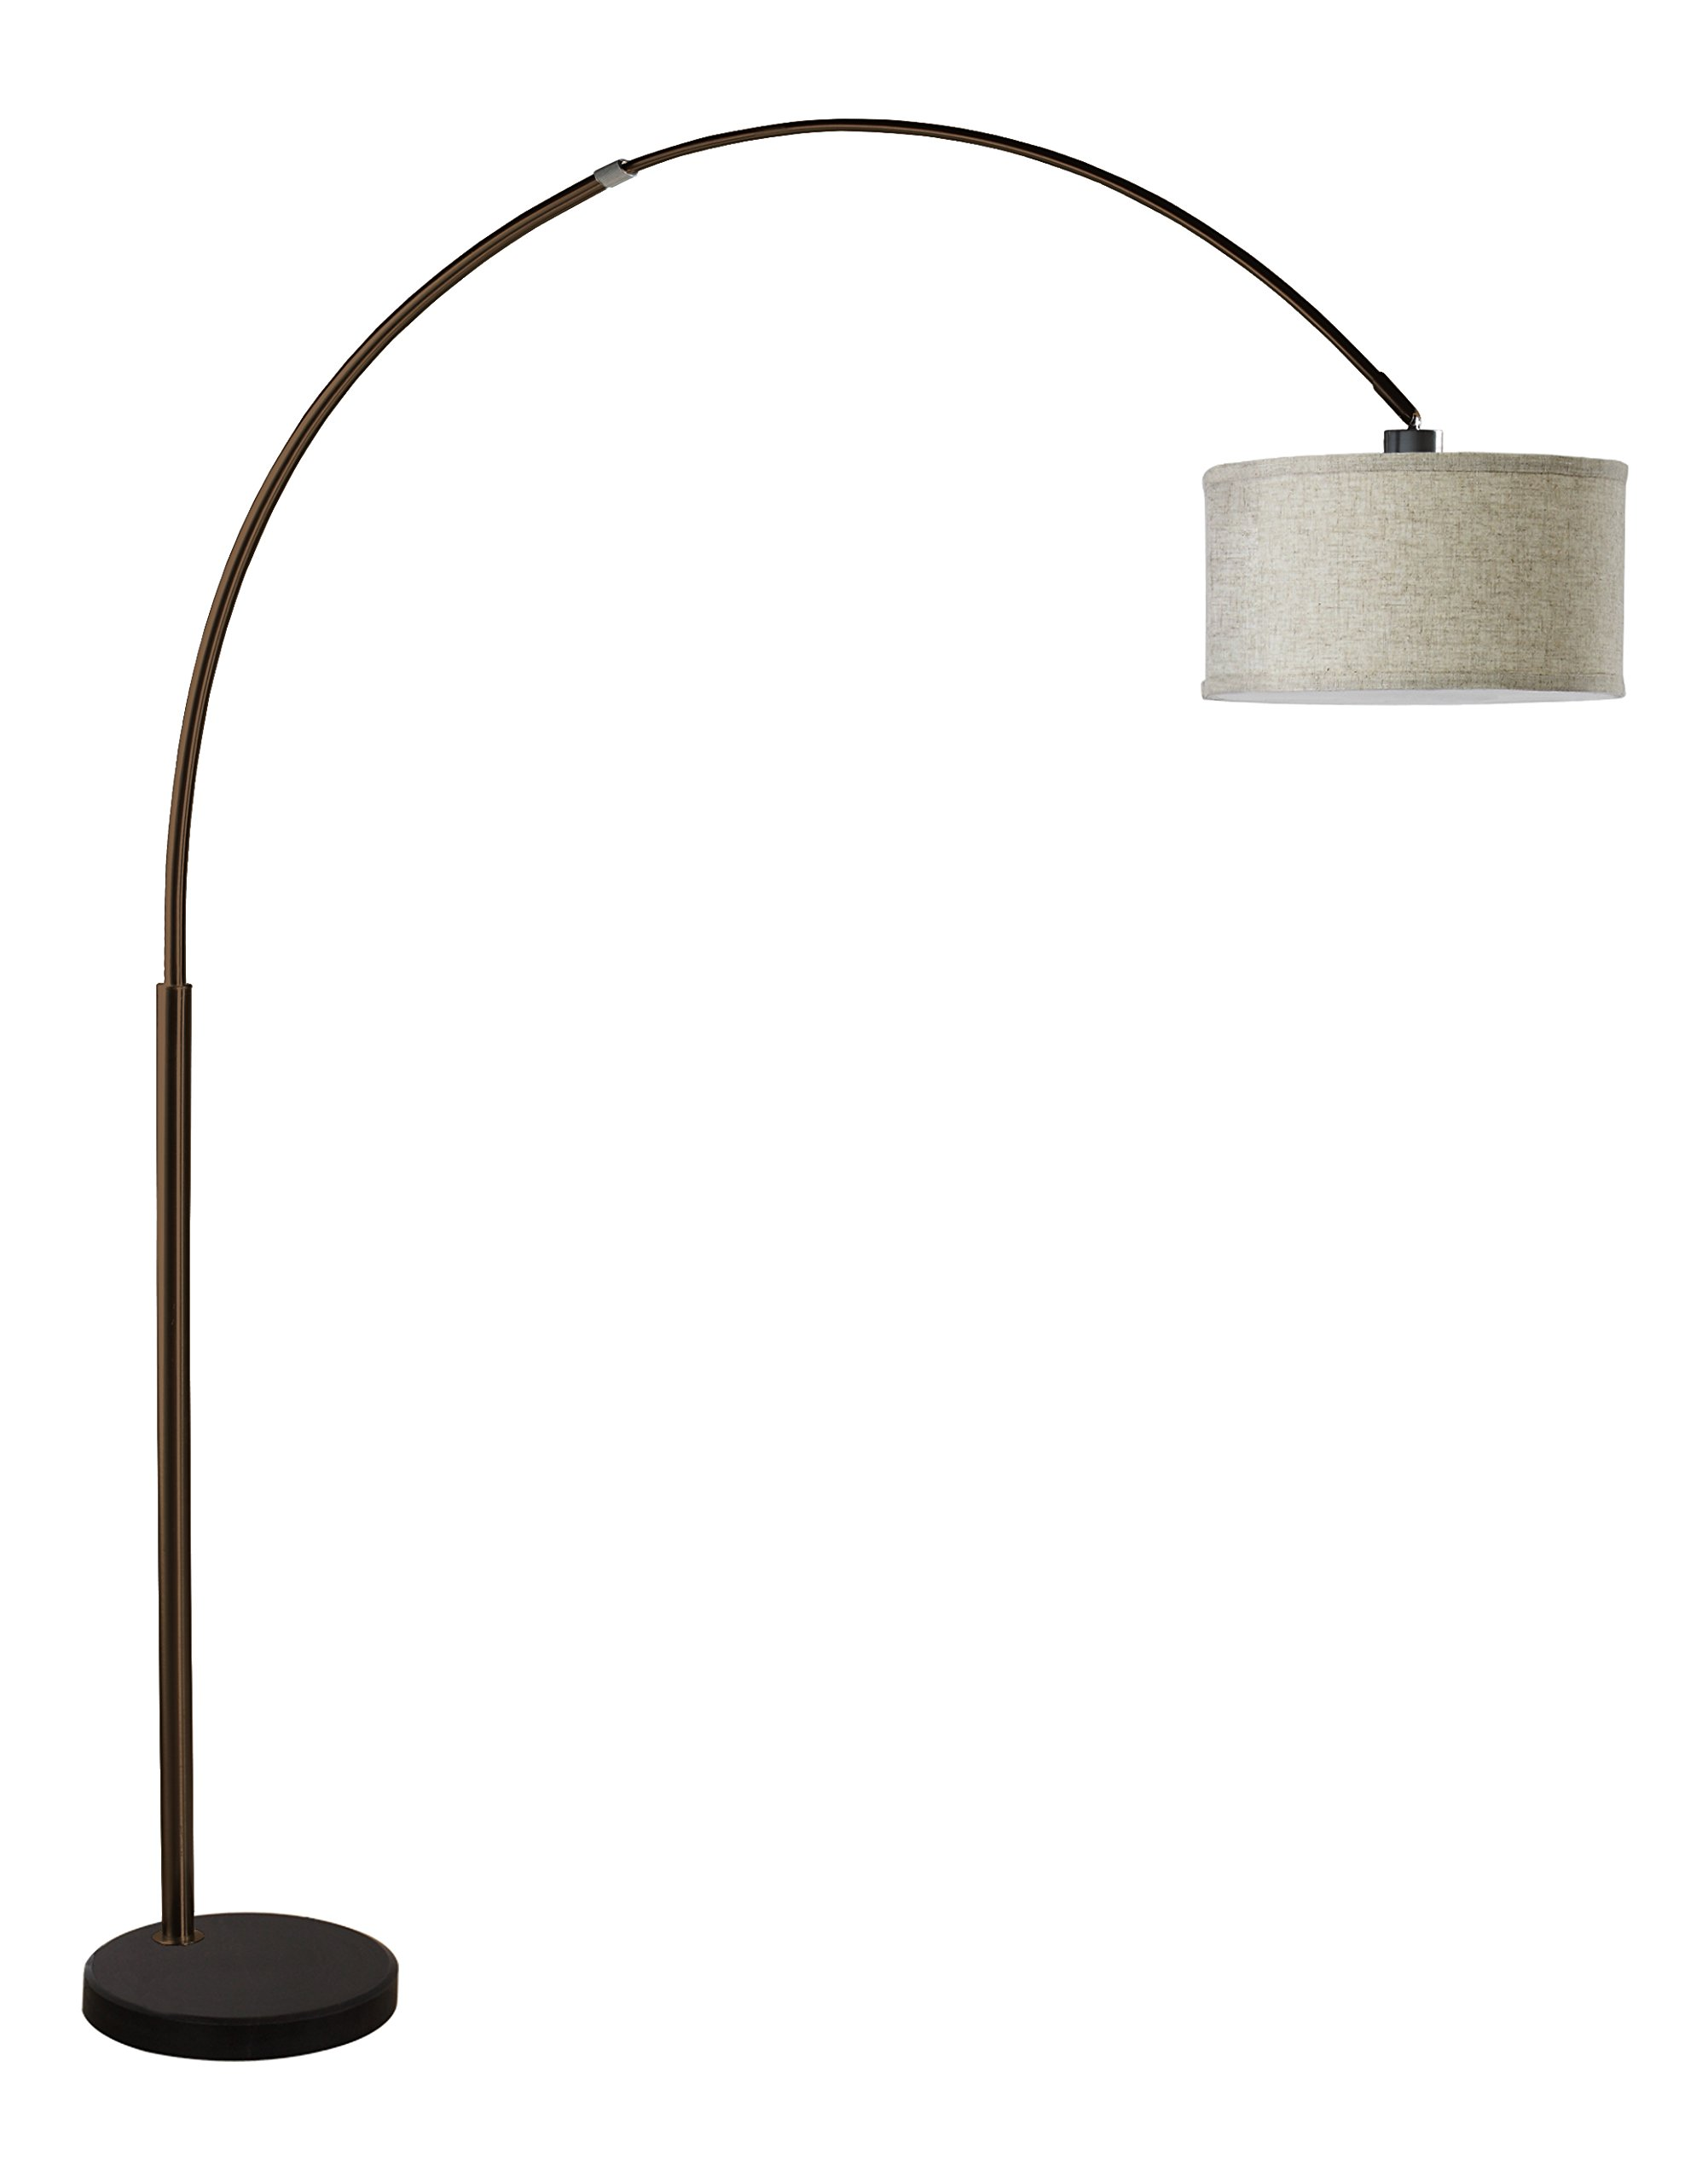 SH Lighting 6938ES-XL 81'' H Steel Adjustable Arching Floor Lamp with Marble Base, Espresso